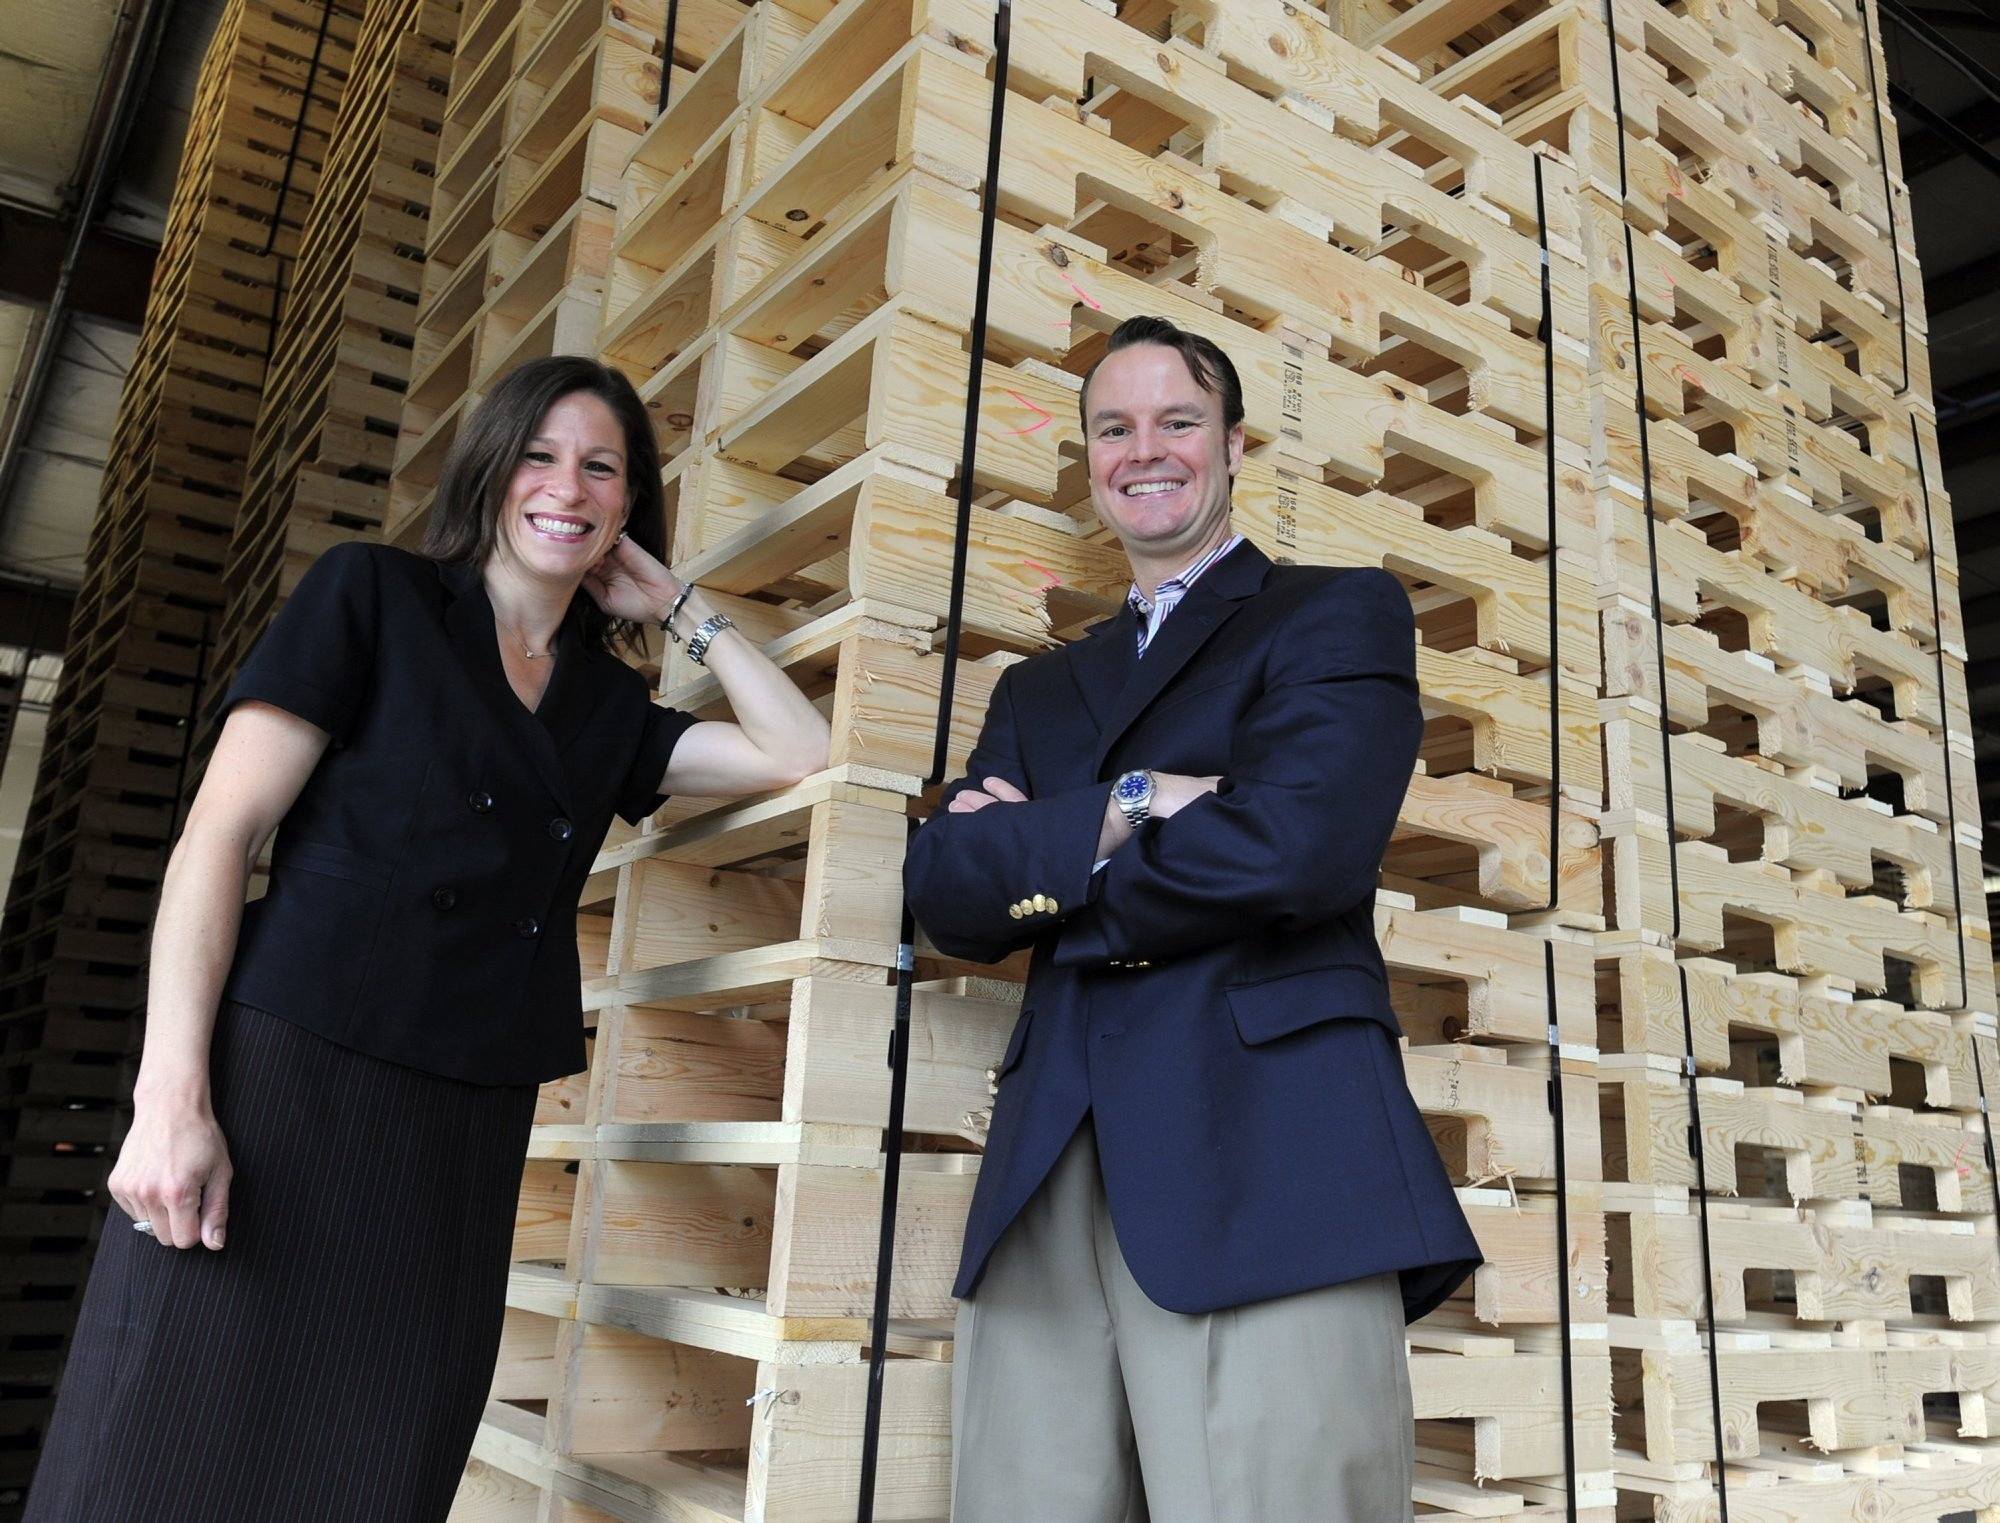 Annette and Shawn Walter took a leave from professional jobs to buy a 75-year-old pallet distribution business called Timber Industries, which they say better fits their lifestyle.